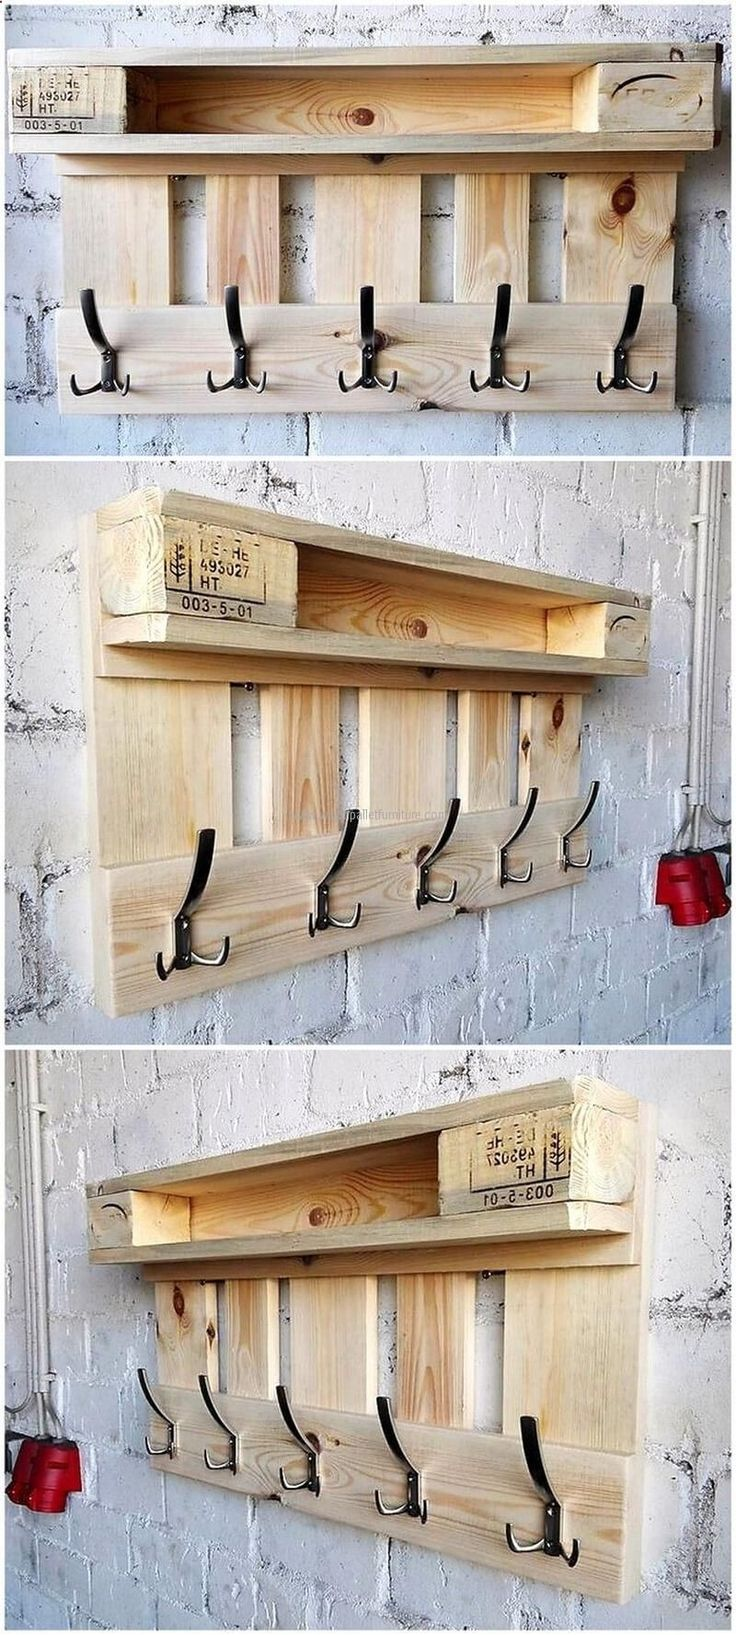 Woodworking - Wood Profit - repurposed pallet hanger idea Discover How You Can Start A Woodworking Business From Home Easily in 7 Days With NO Capital Needed!